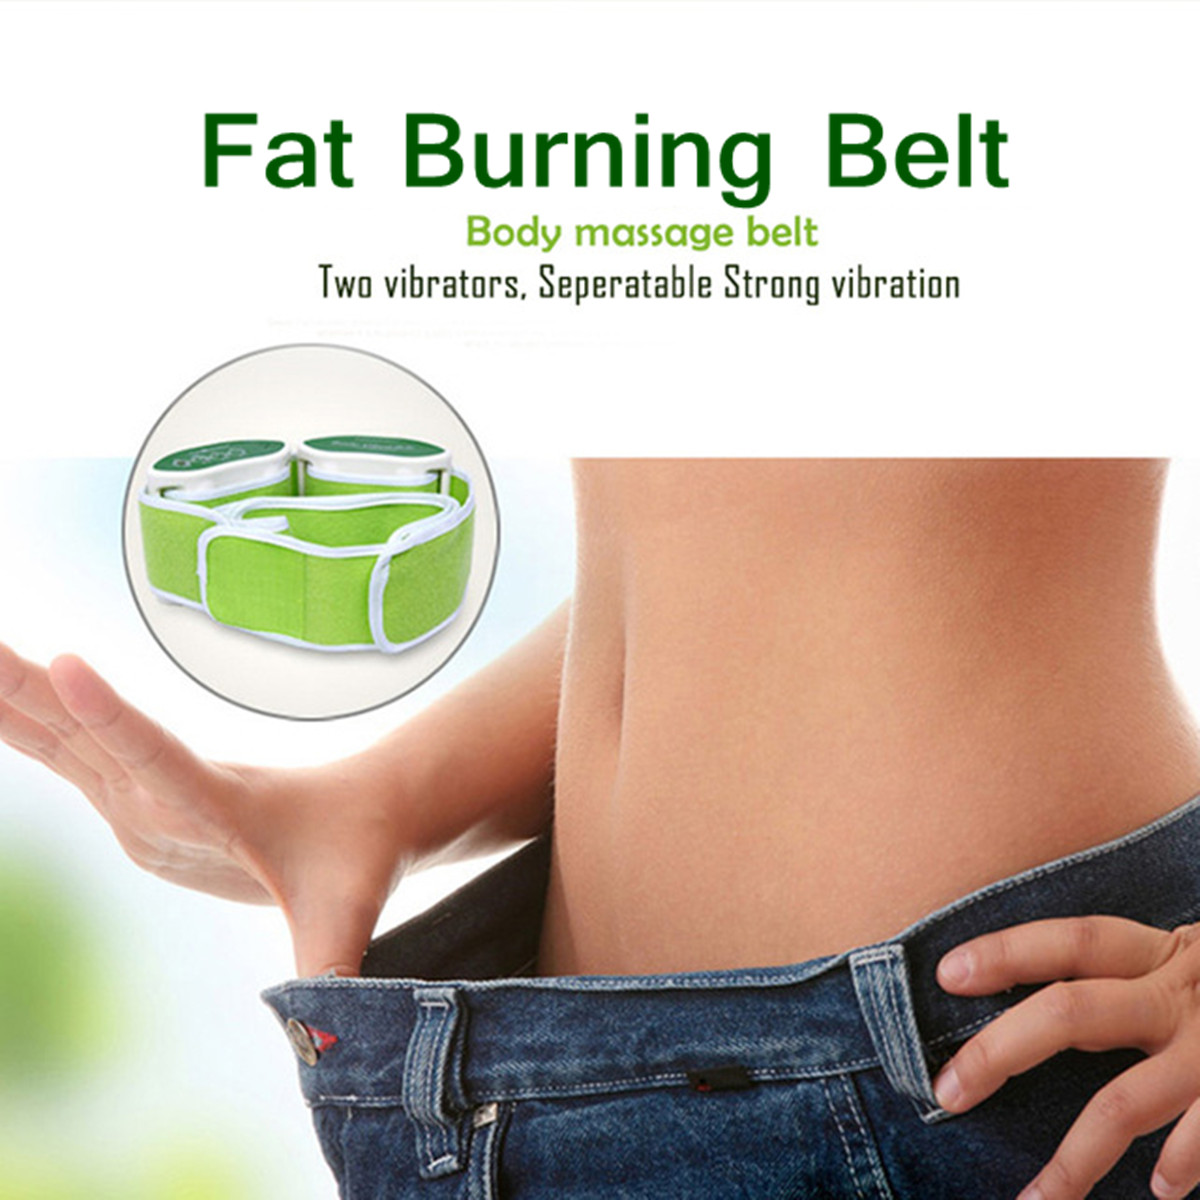 Electric Vibrating Sculpting Fat Burning Thin Waist Massager Slimming Belt Body ABS Fitness Detoxification Adjustment Compact 2015 redutores de medidas tv with the genuine chen tan teacher relief oil thin body fat doctor lotus leaf tea seven waist soup